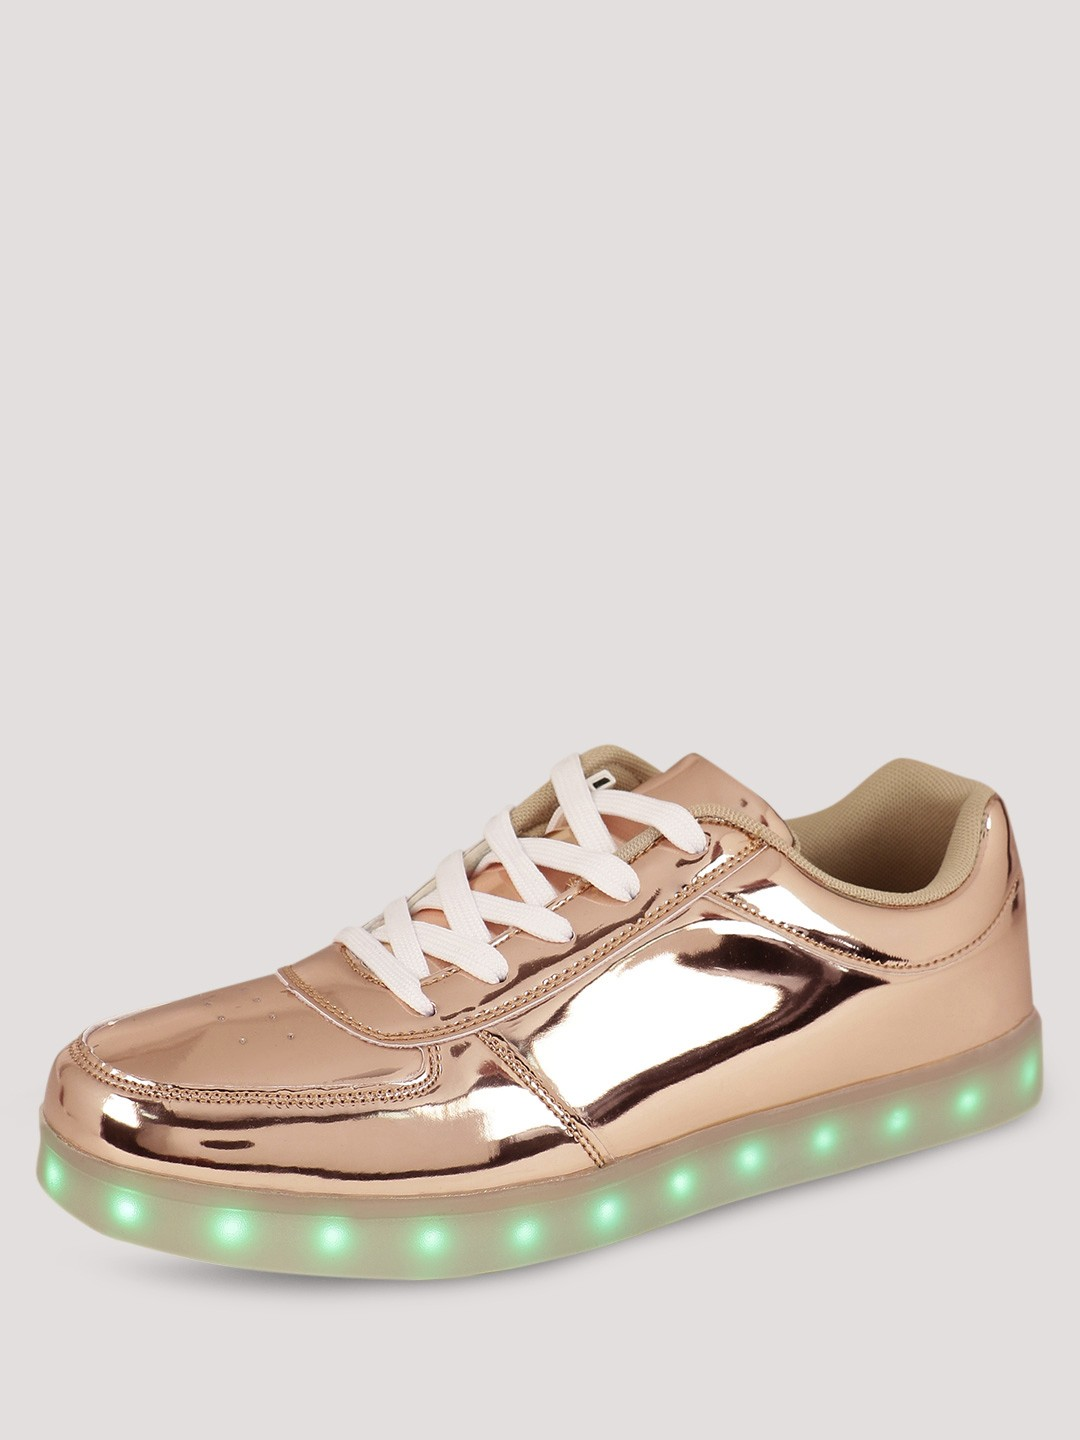 buy koovs light up sole trainers for s gold